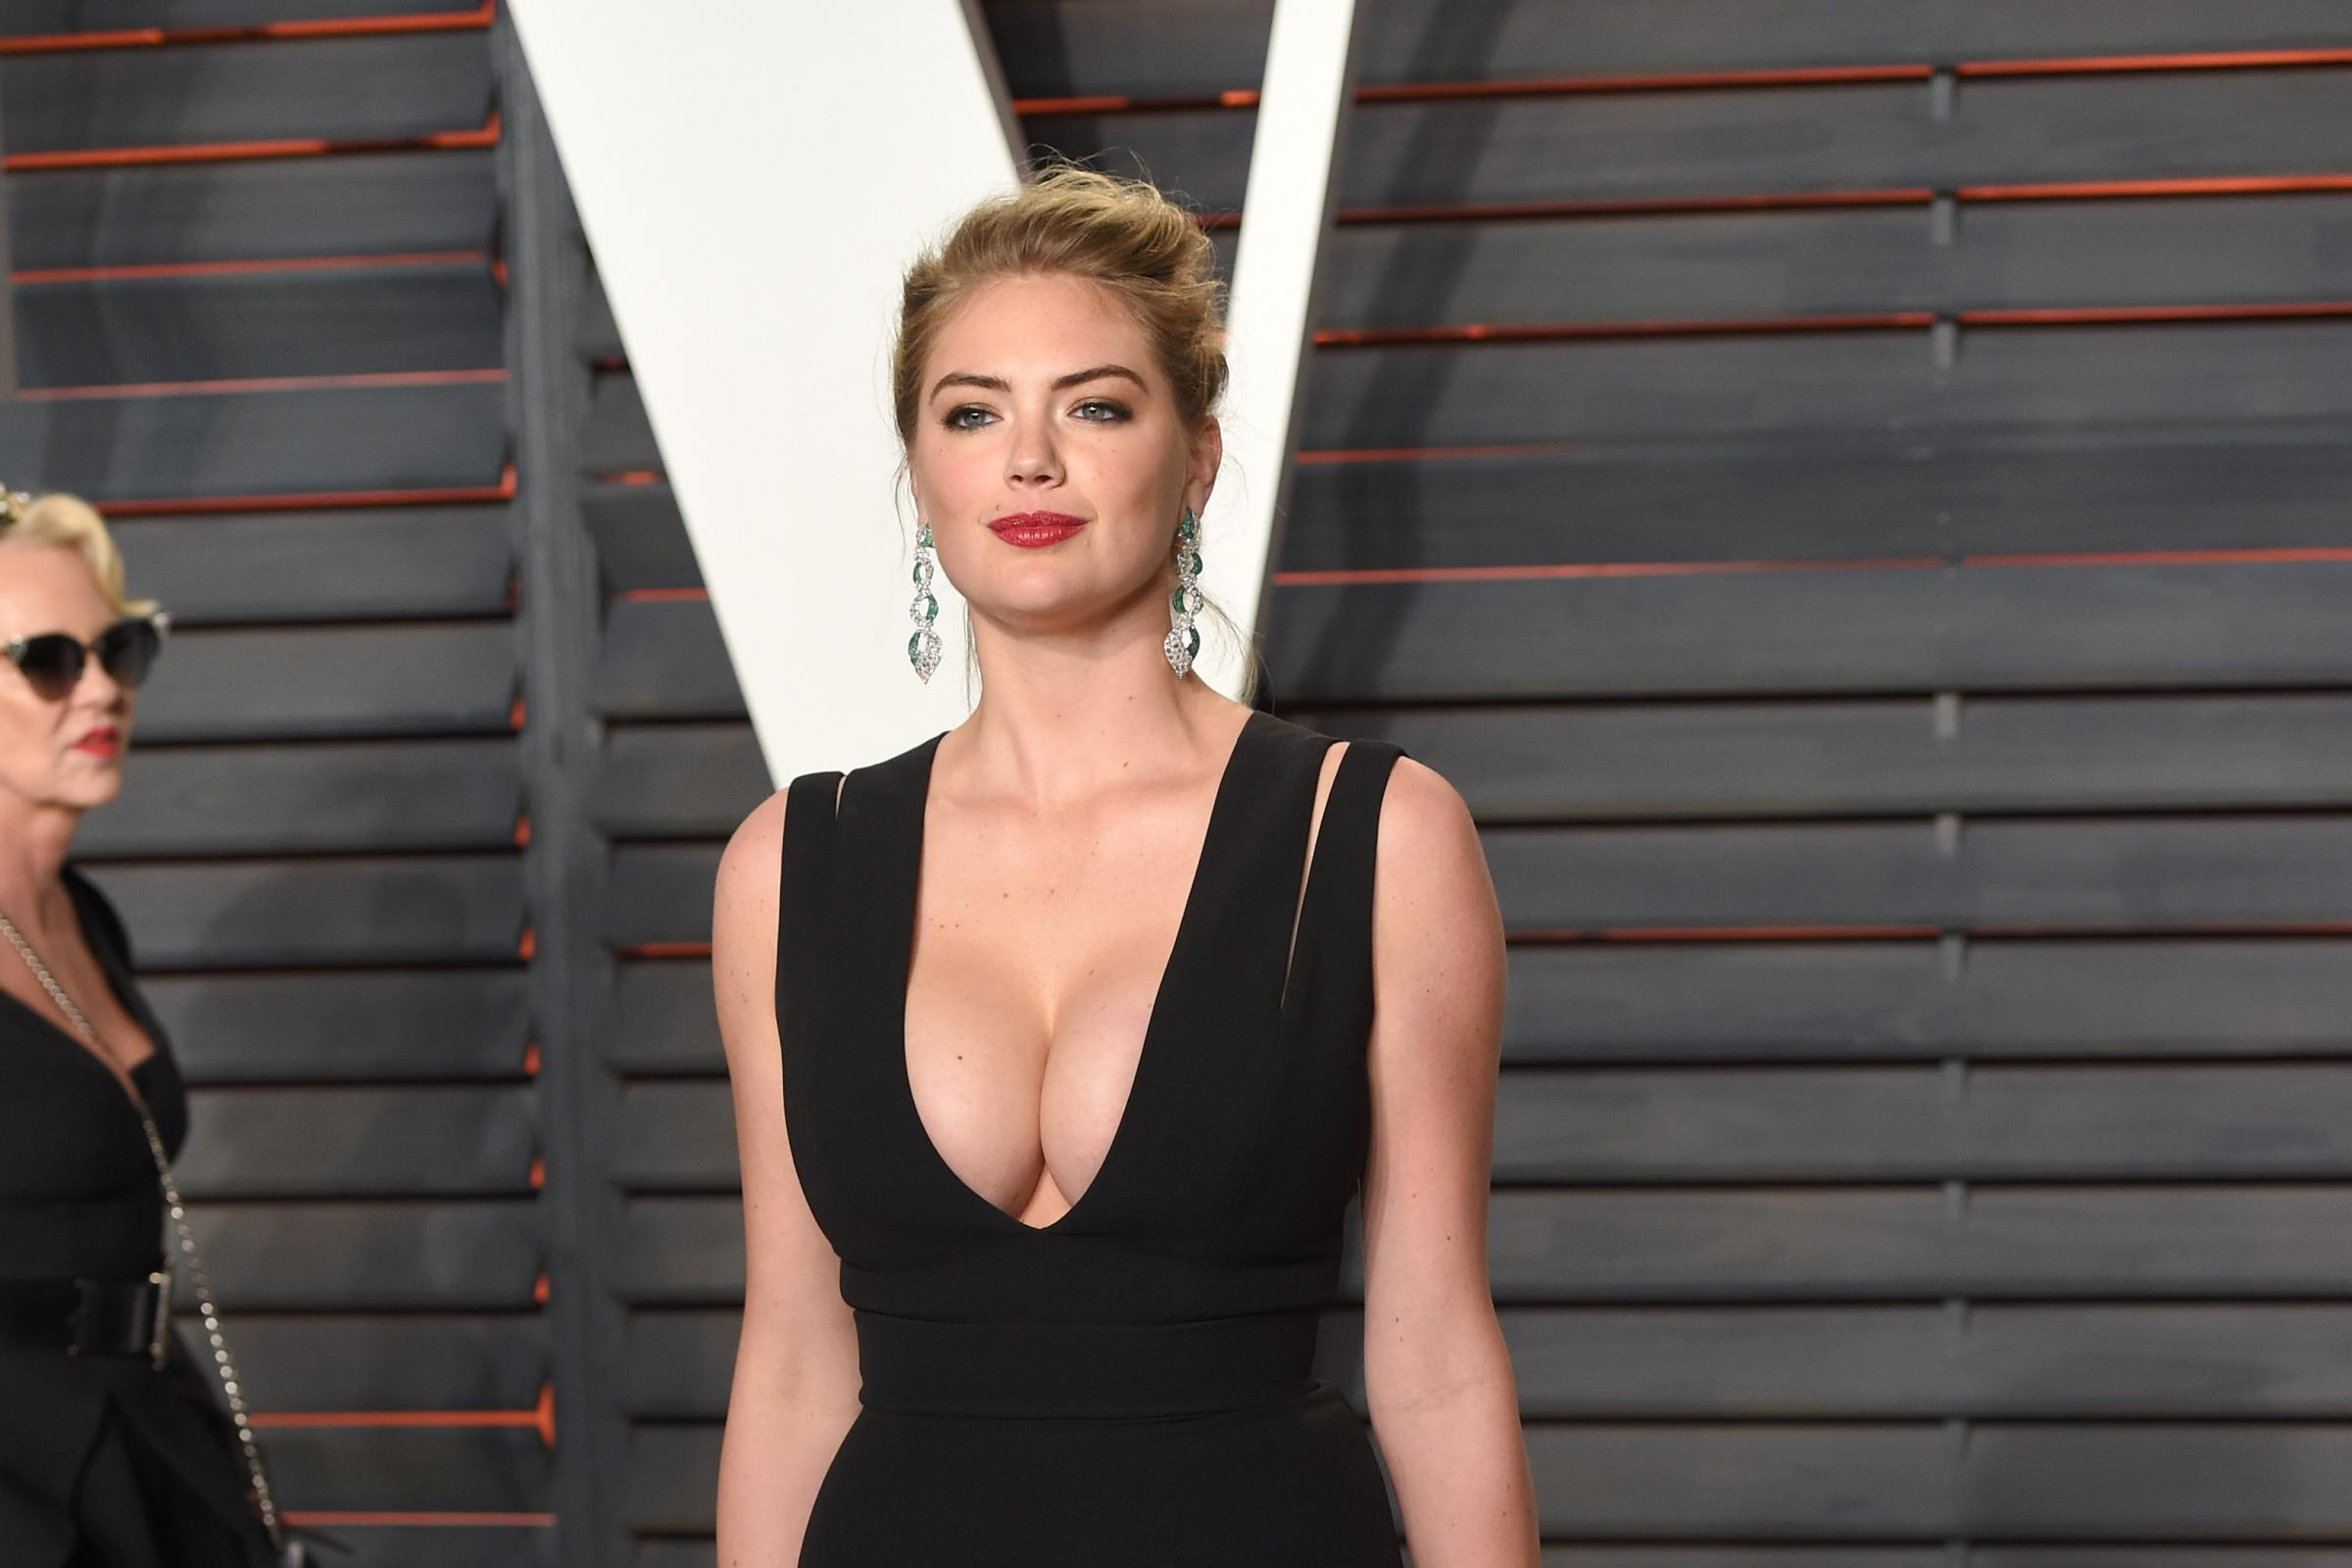 Kate Upton accuses Guess co-founder of sexual harassment (PA Wire/PA)